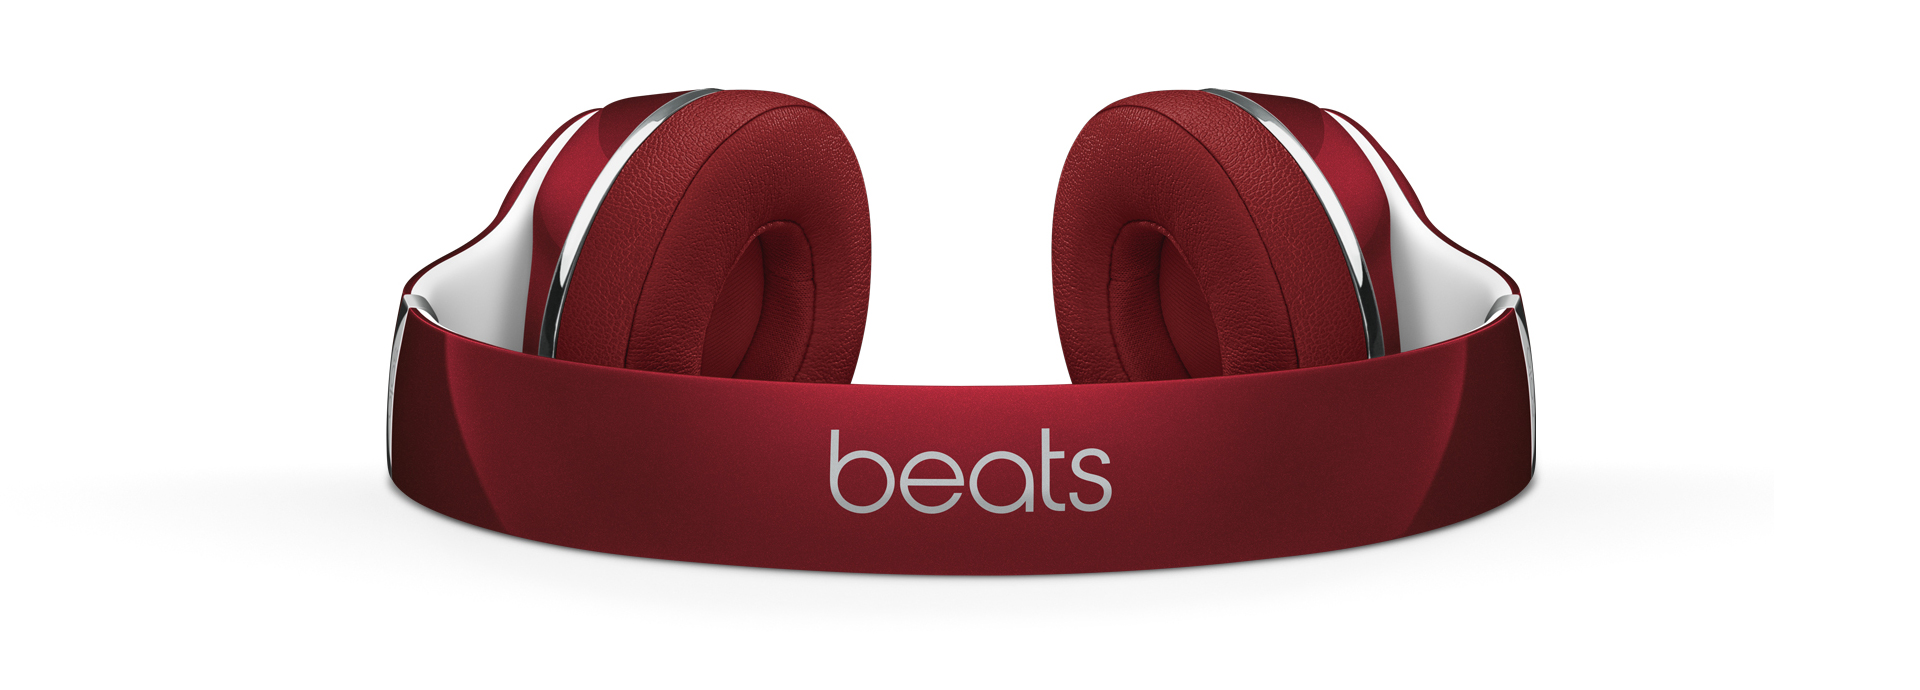 tai nghe beats solo 2 luxe edition red